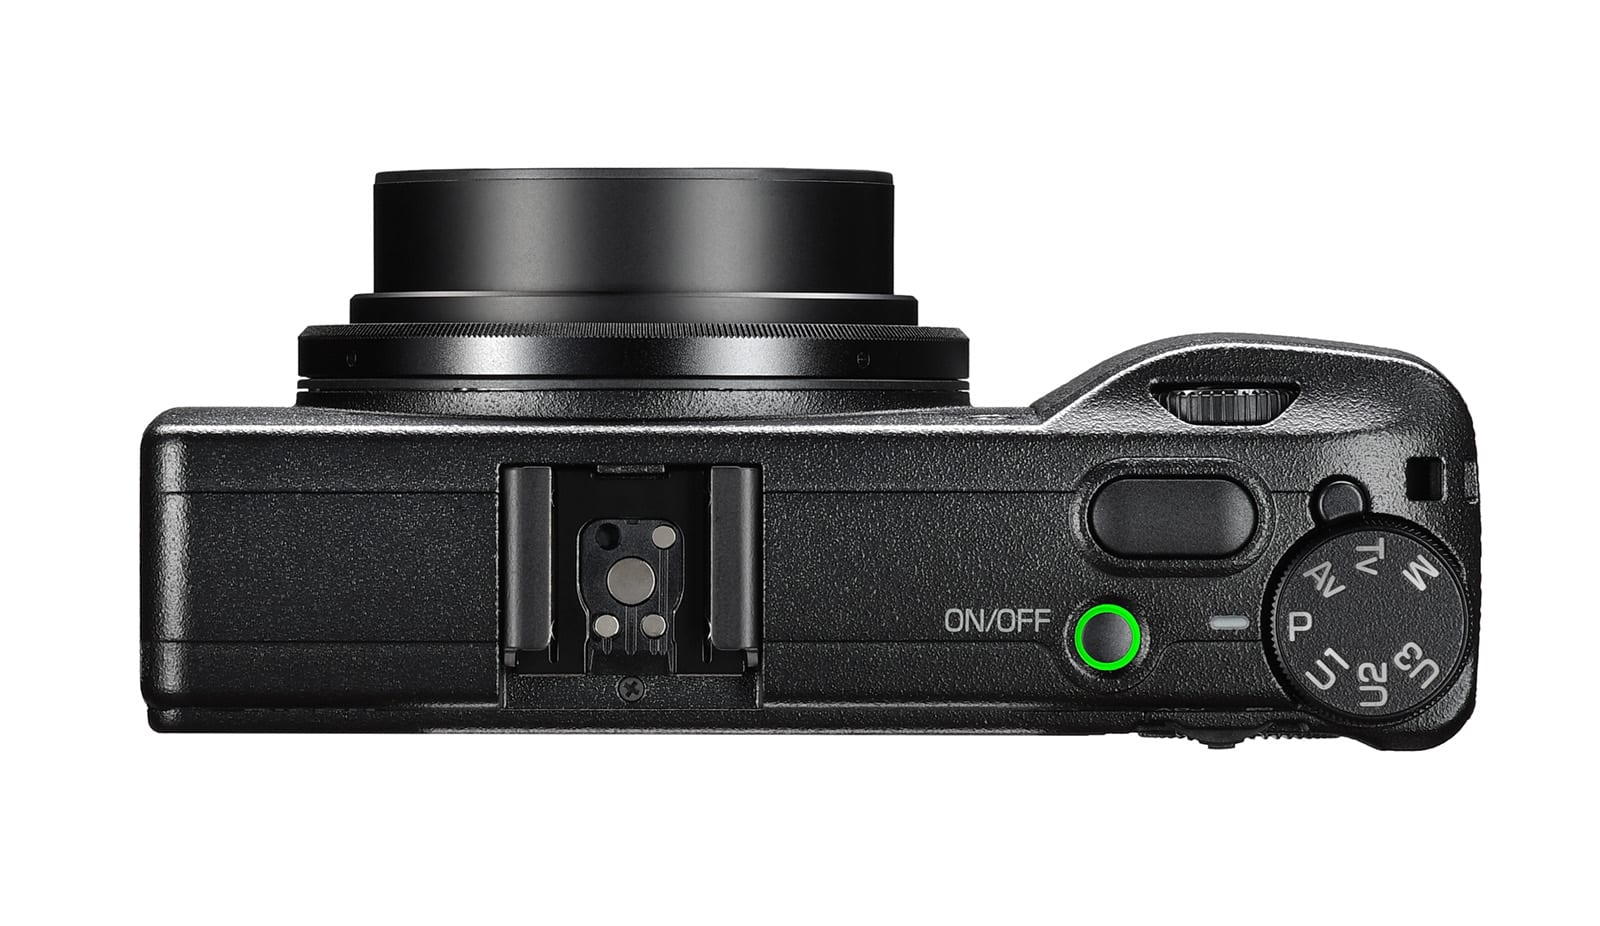 Ricoh's $899 large-sensor GR III compact will go on sale in March